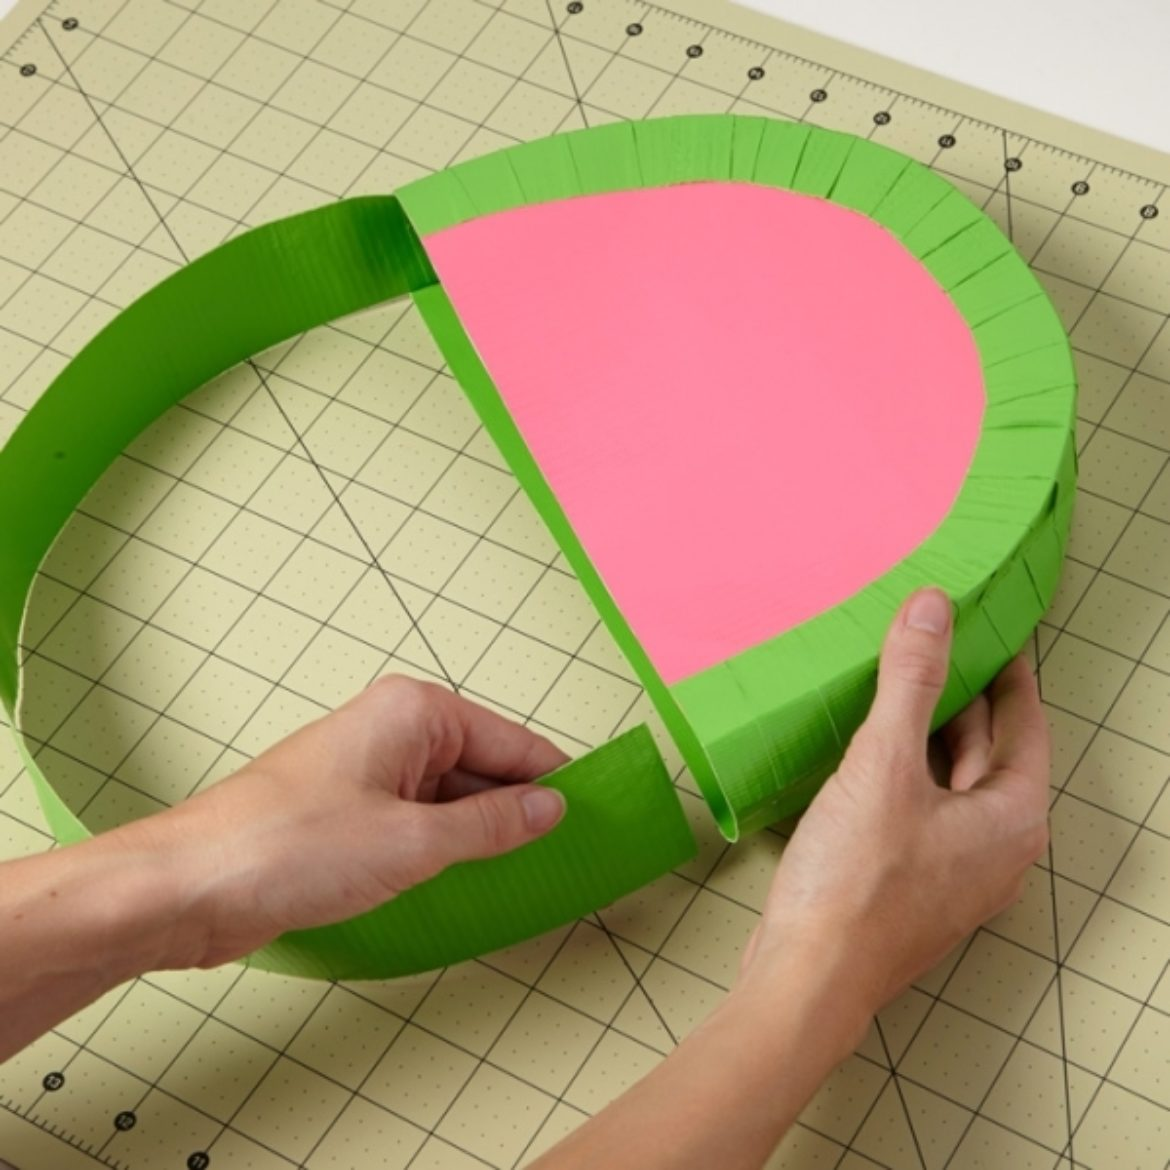 Double sided Duck Tape strip being attached to the bag to form a strap